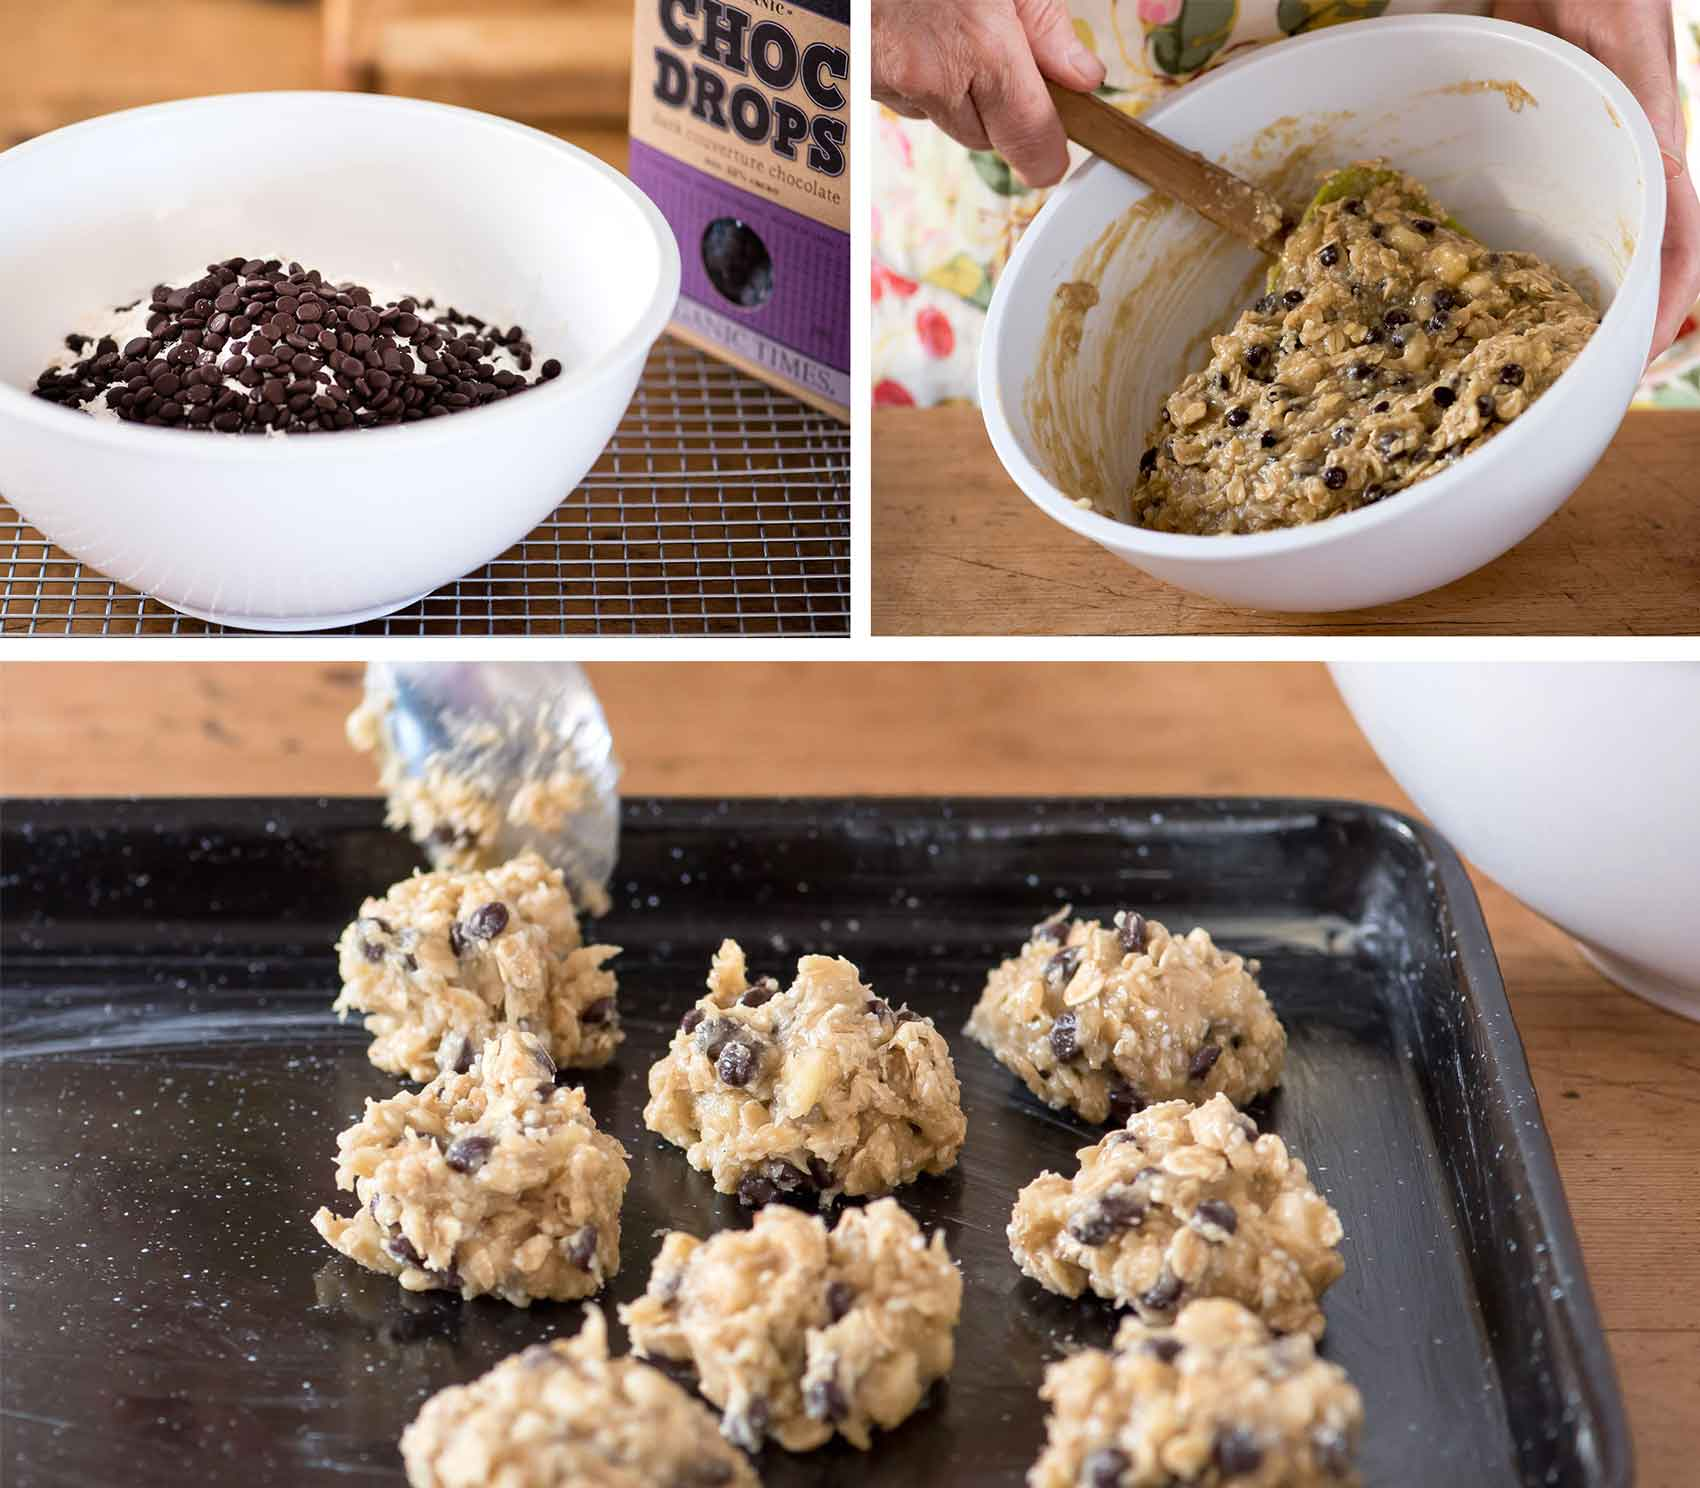 Mixing up Organic Times ingredients for chocolate drop biscuits